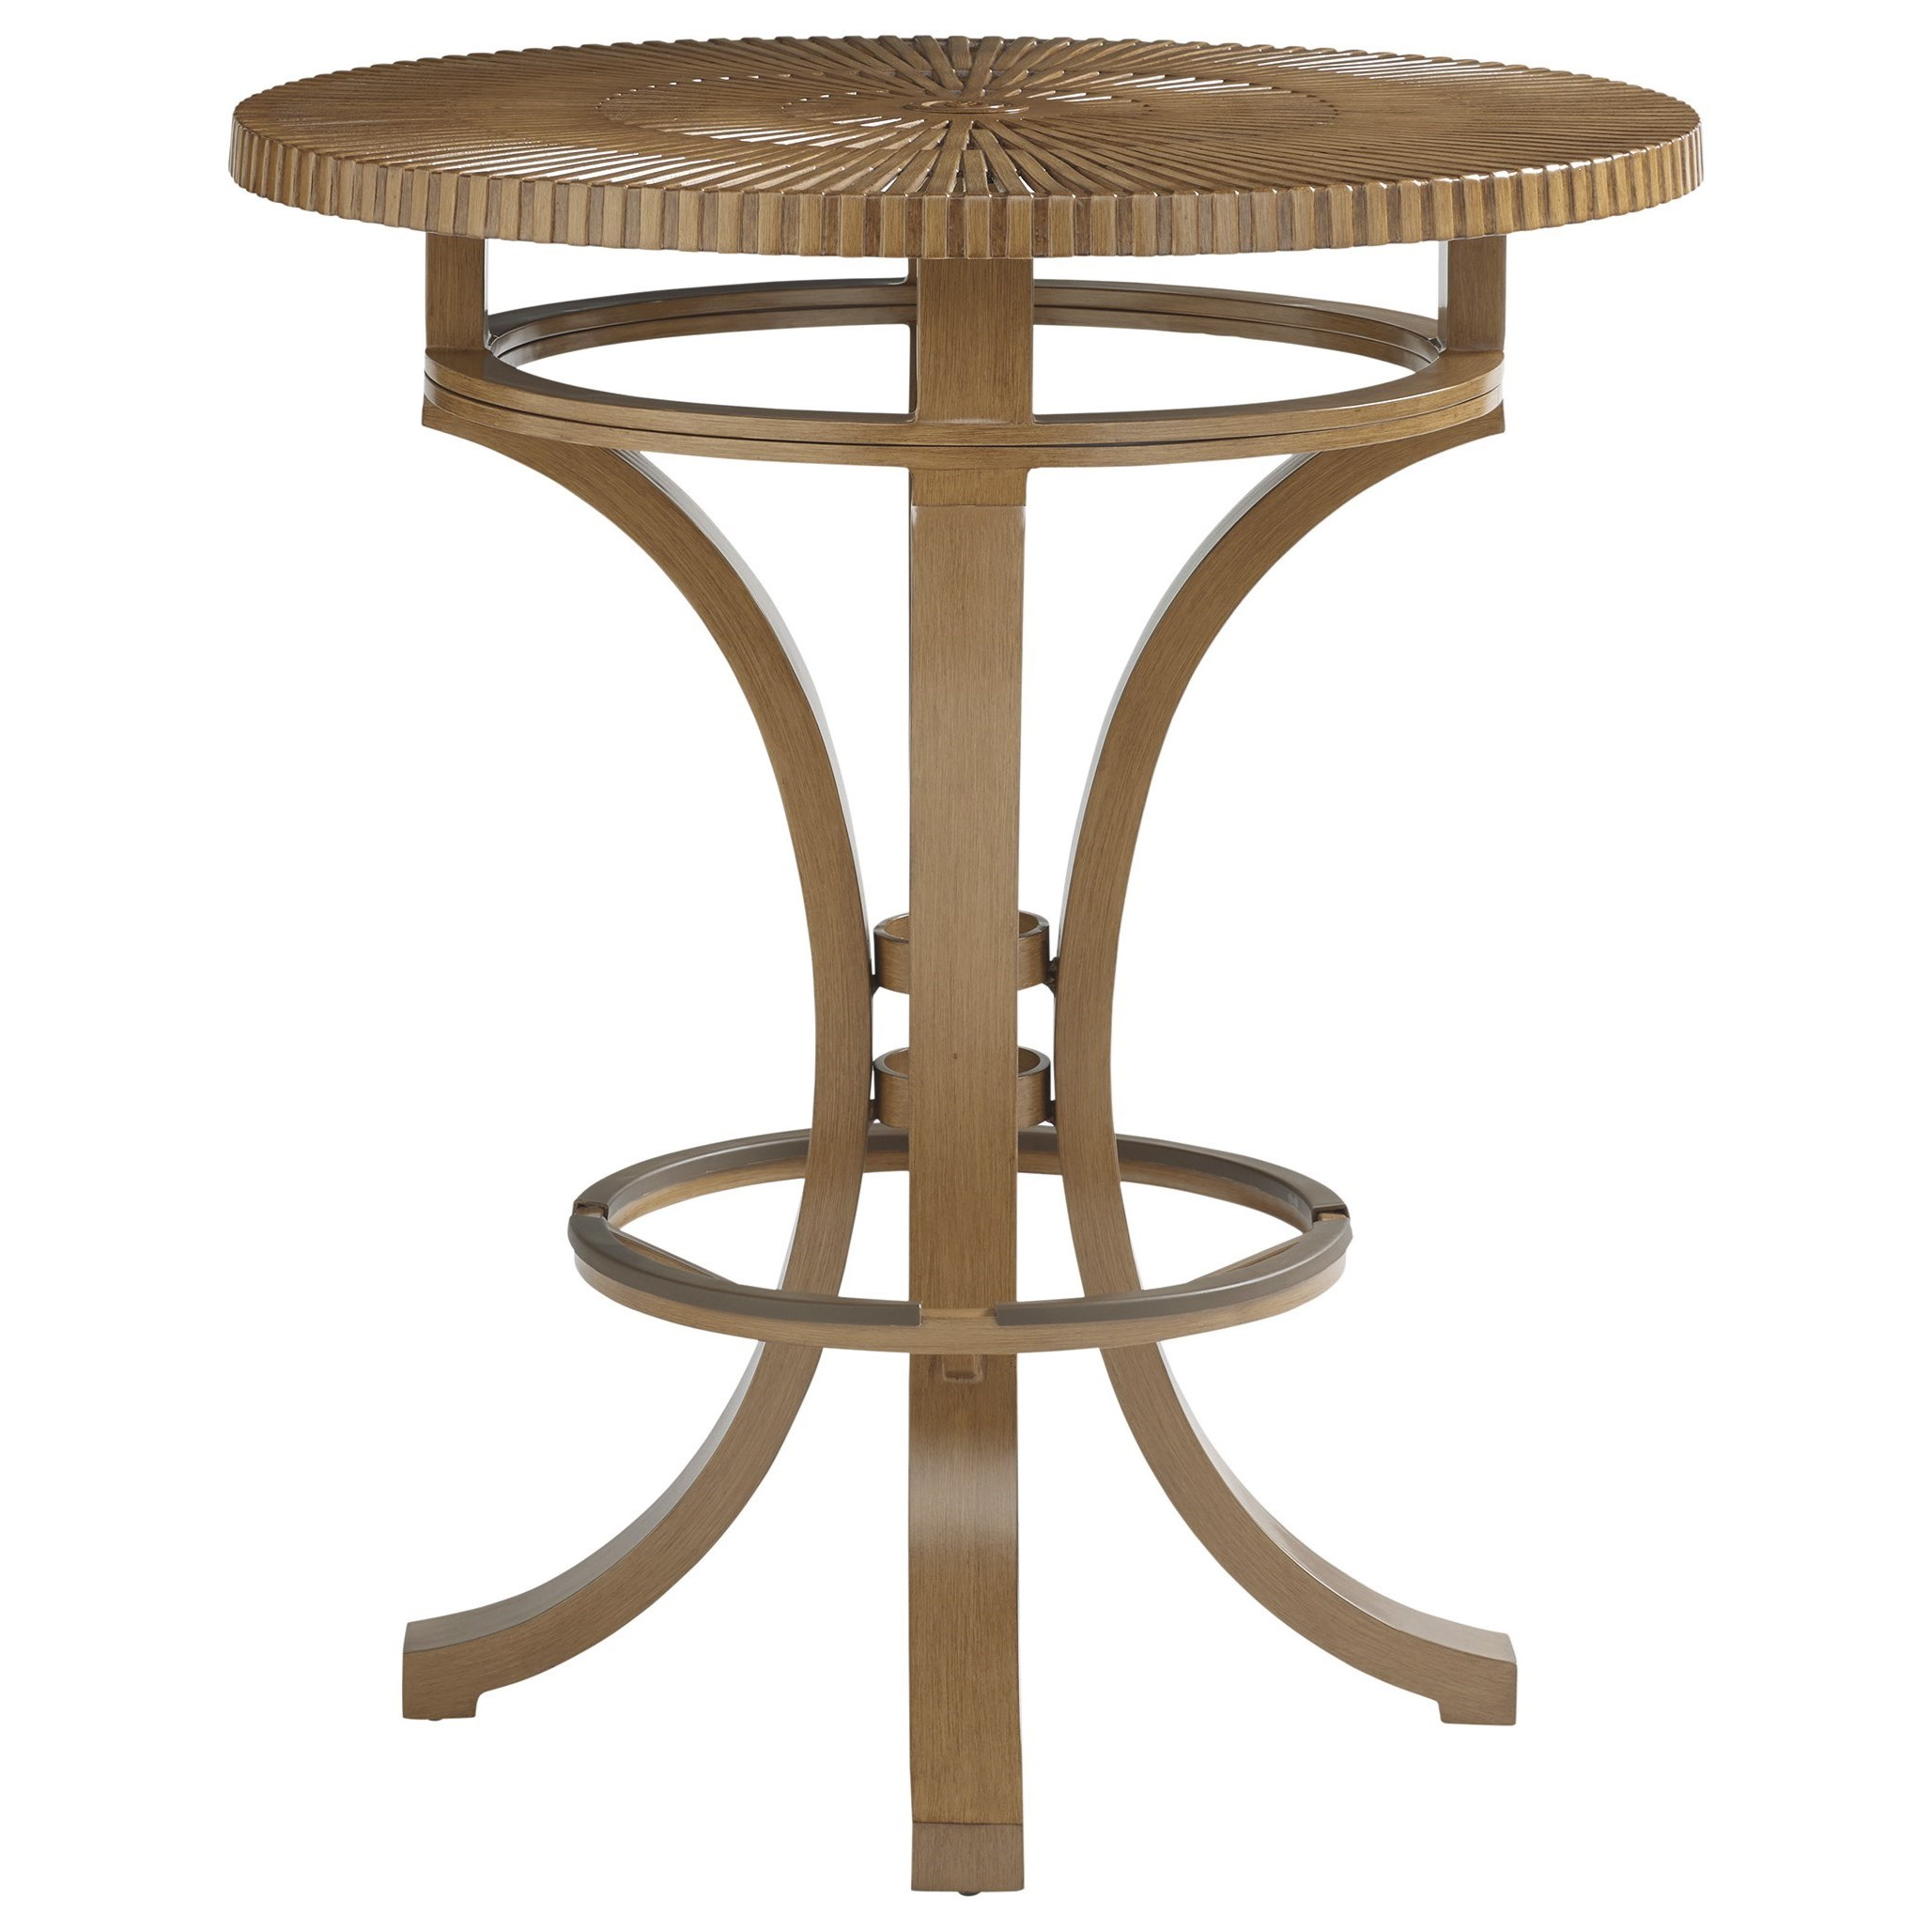 St Tropez Bistro Table by Tommy Bahama Outdoor Living at Baer's Furniture